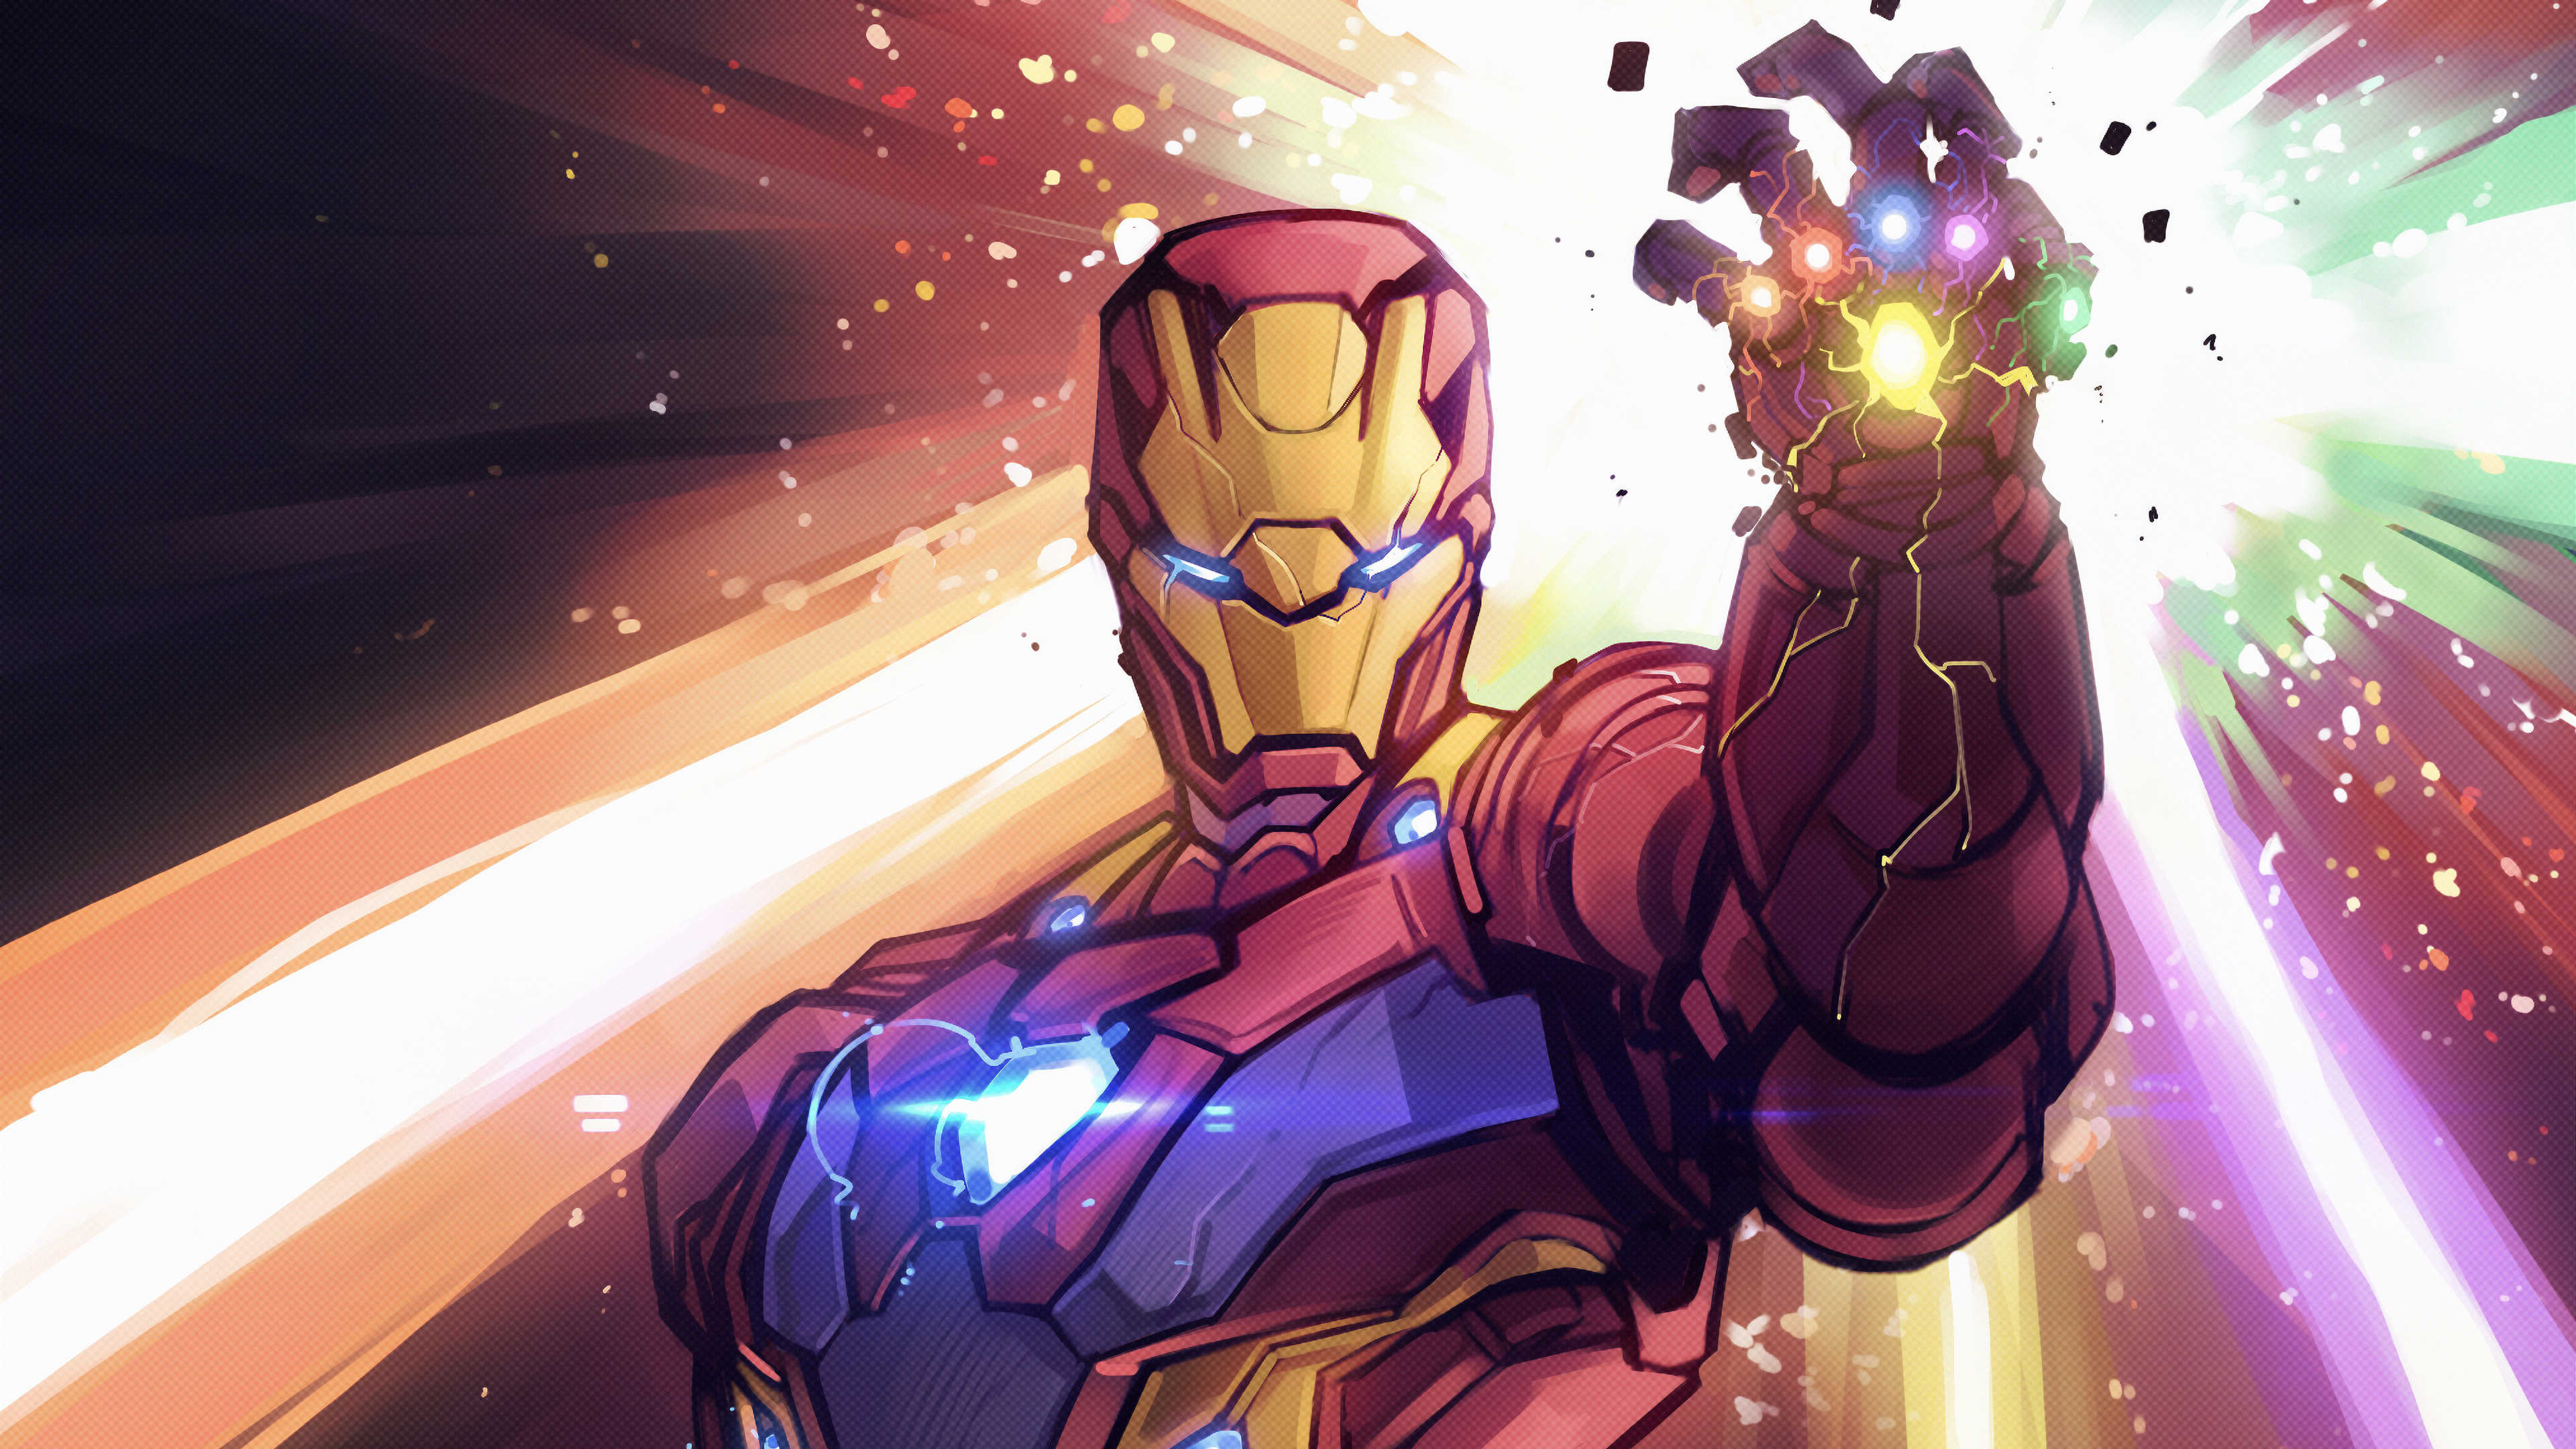 iron man stones 1570394649 - Iron Man Stones - superheroes wallpapers, iron man wallpapers, hd-wallpapers, digital art wallpapers, artwork wallpapers, 4k-wallpapers